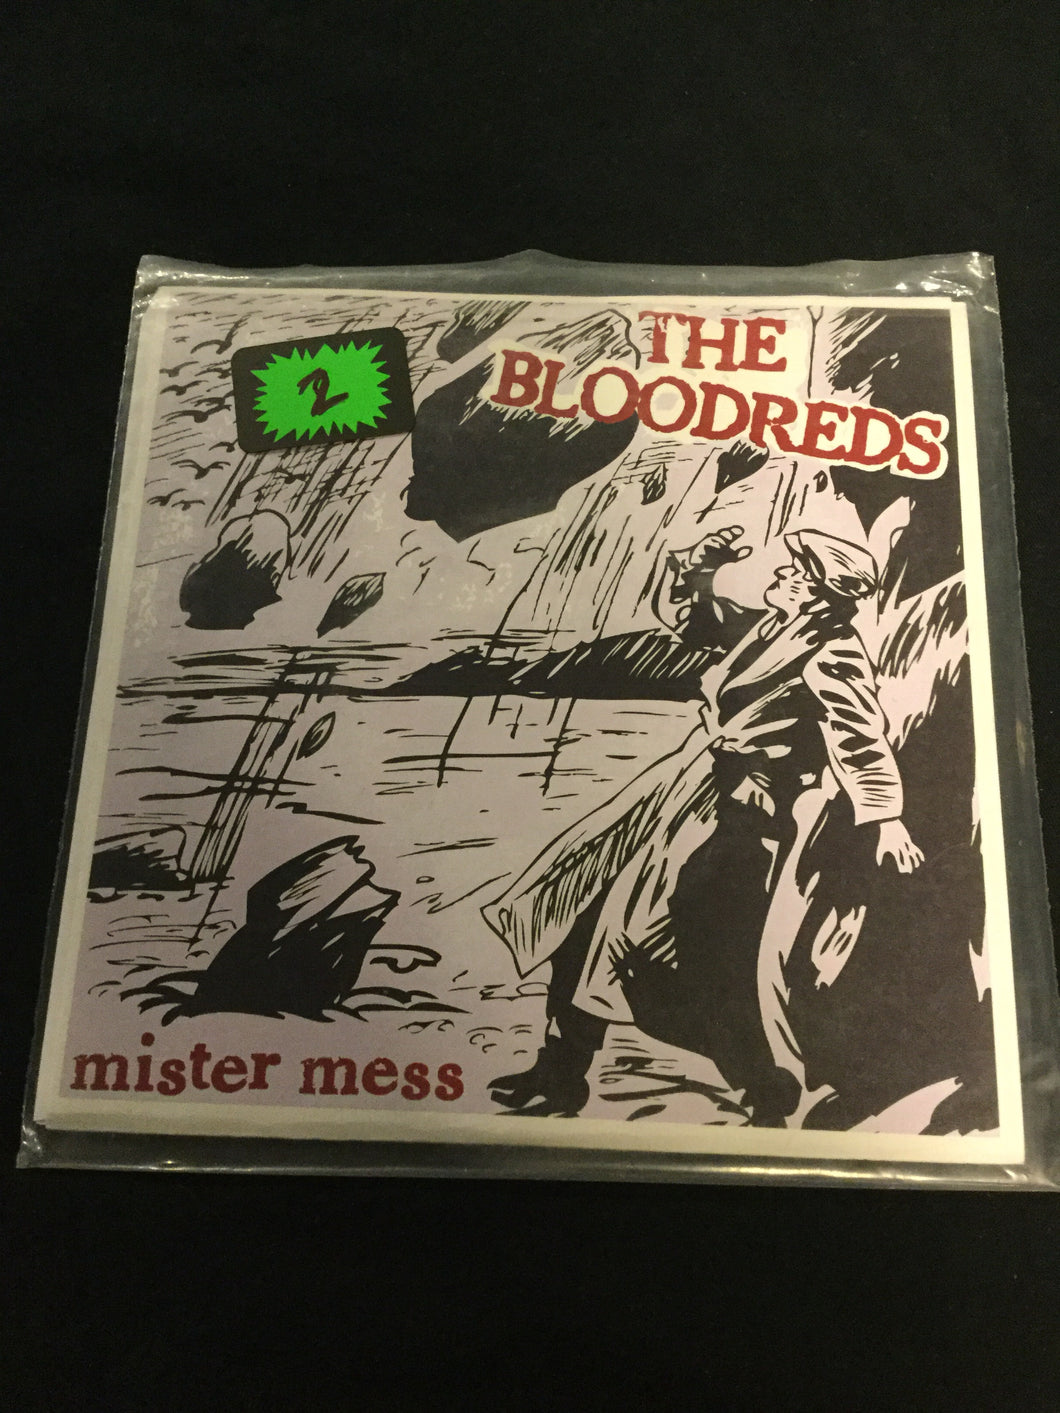 The Bloodreds - Mister Mess 7 in